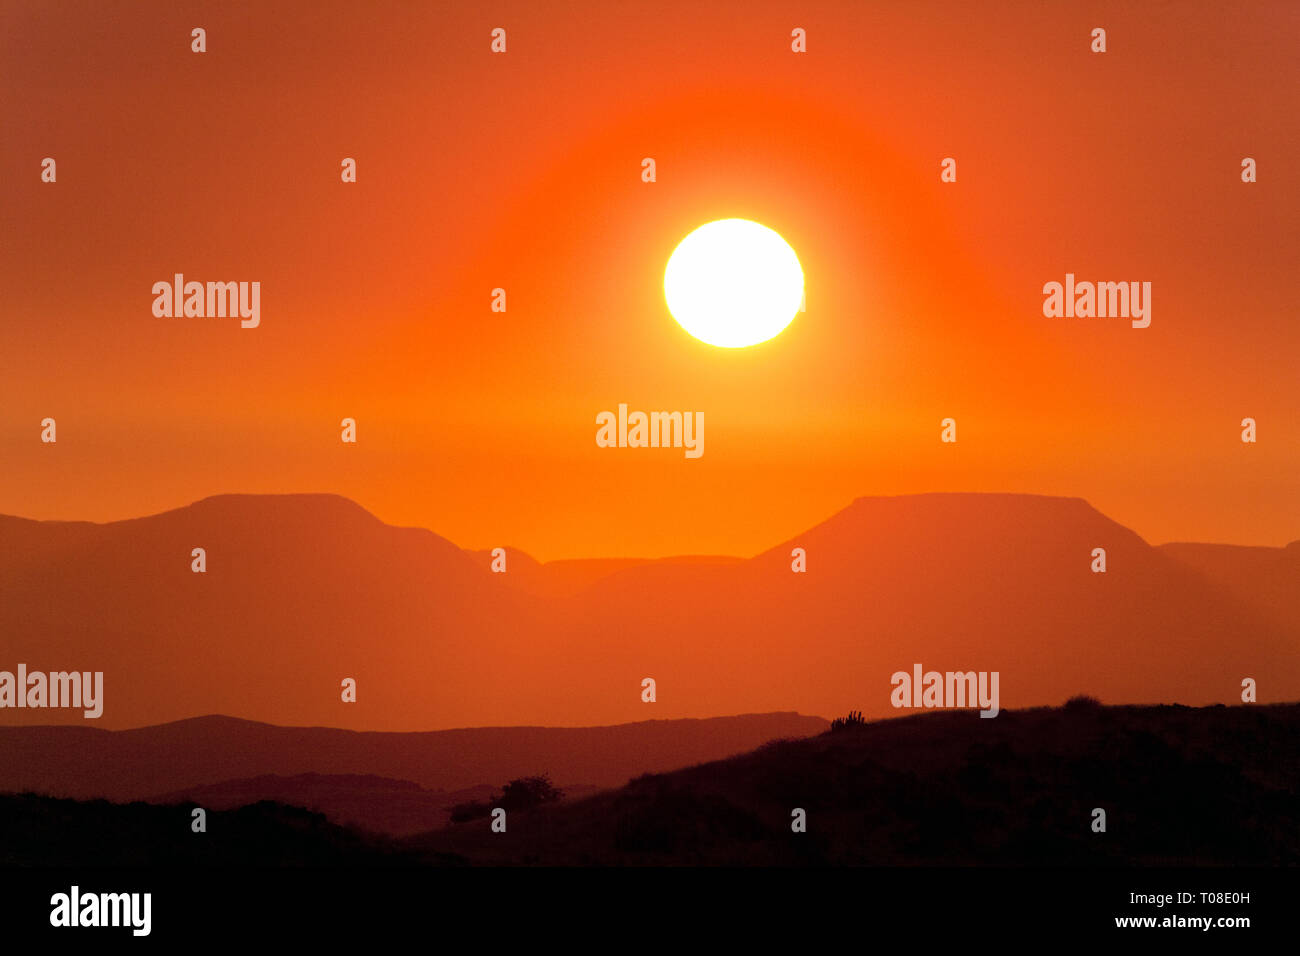 Africa, Namibia, Damaraland.  Dramatic sunset caused by atmospheric dust in dry mountain scenery. - Stock Image